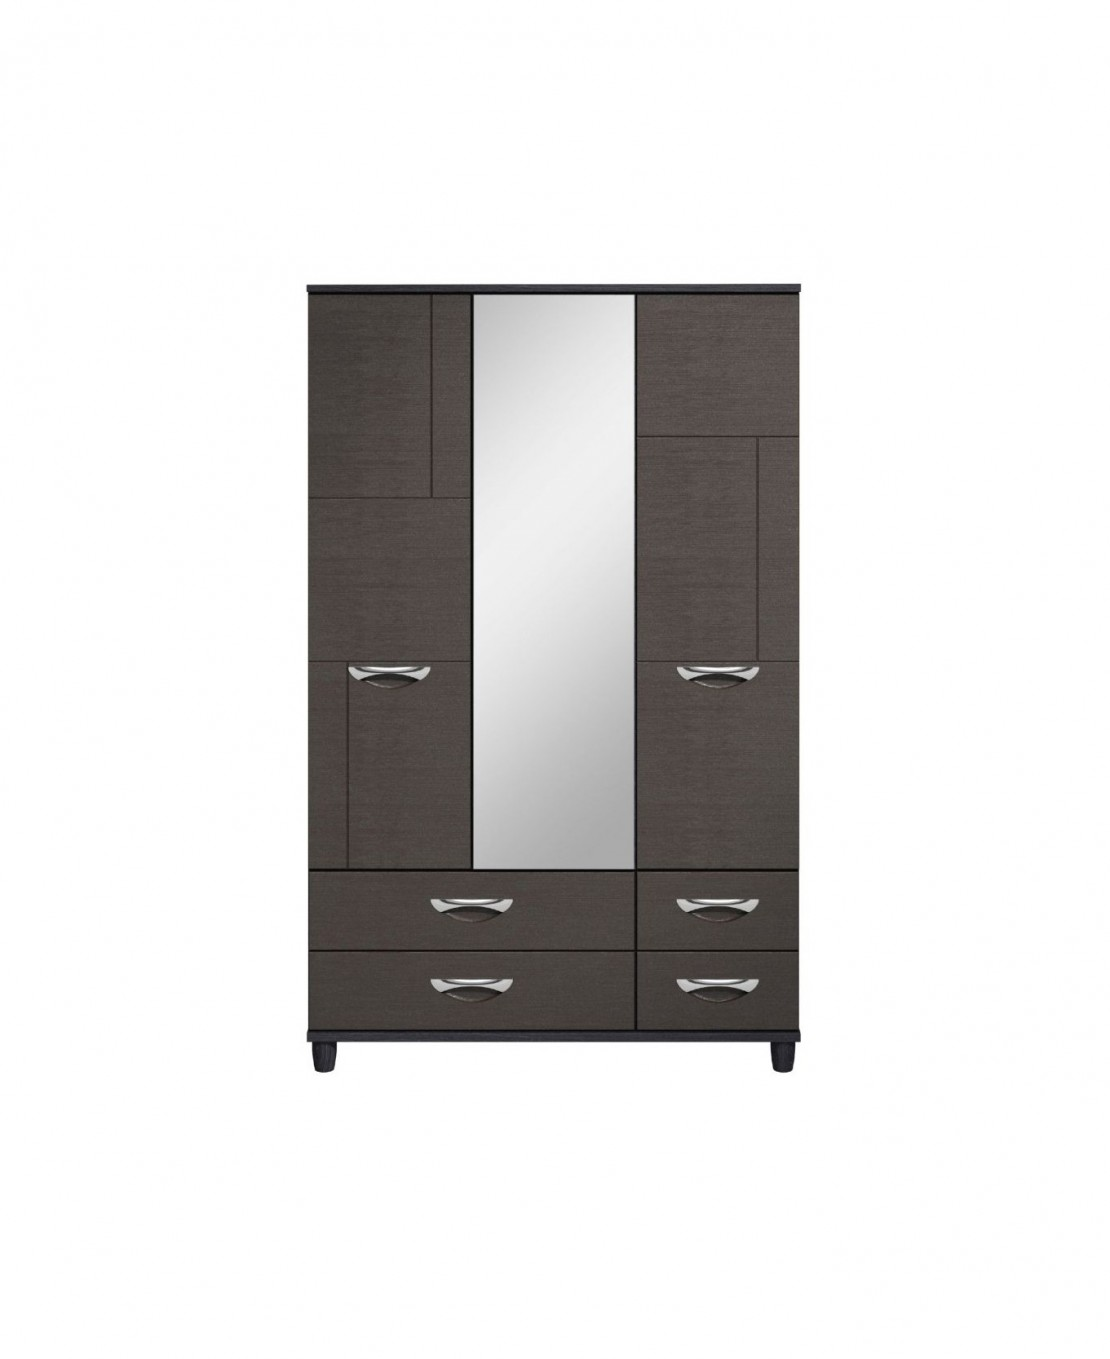 /_images/product-photos/kt-furniture-moda-graphite-3-door-centre-mirrored-gents-robe-a.jpg